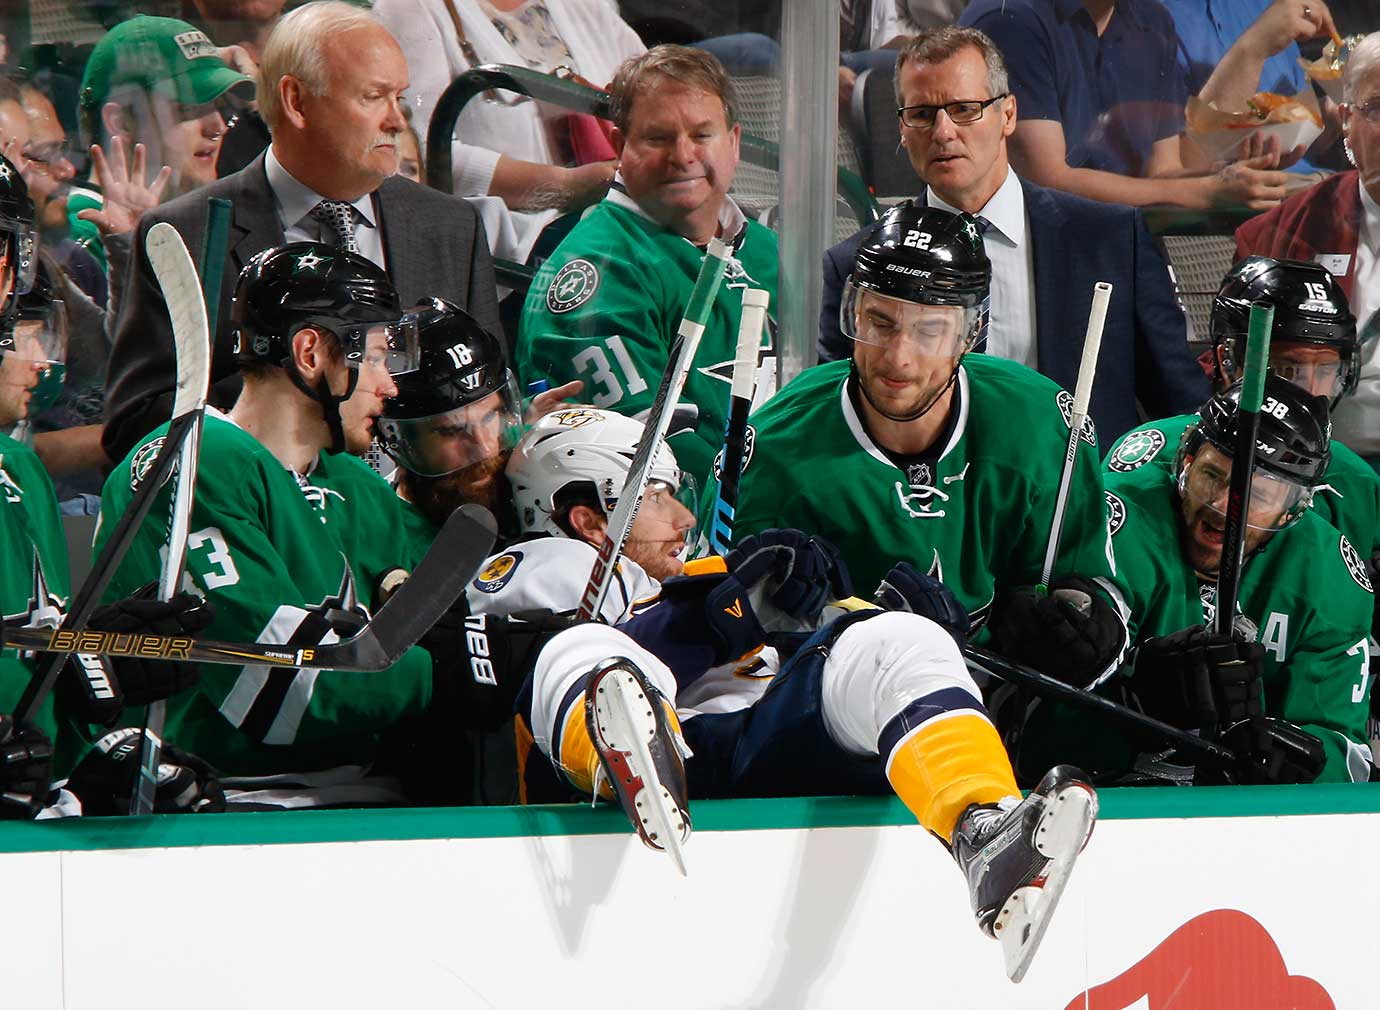 James Neal of the Nashville Predators gets checked into the bench against the Dallas Stars.